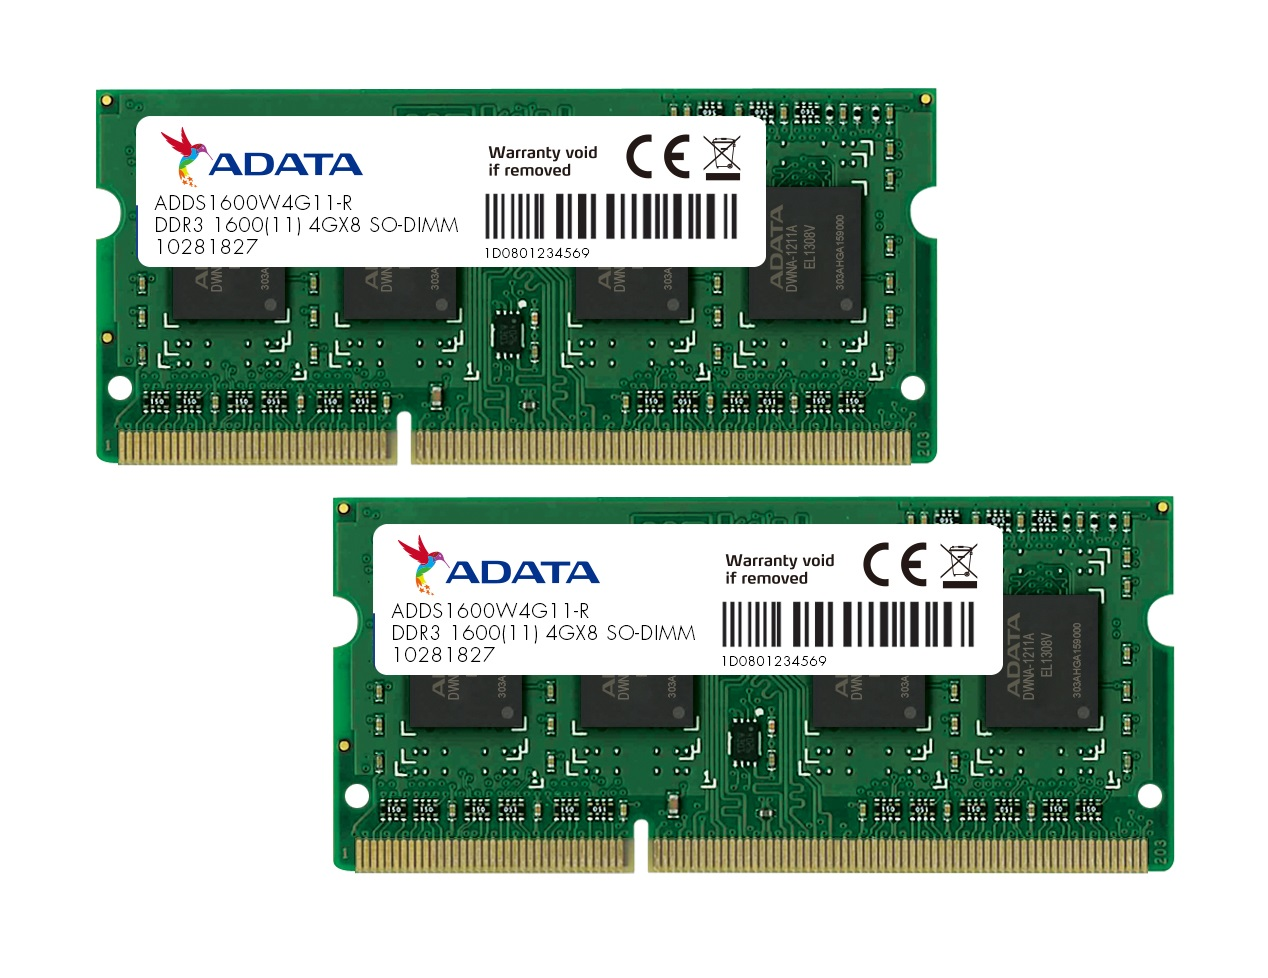 8gb Adata Ddr3 1600mhz So Dimm Pc3 12800 Cl11 Laptop Memory Kit 2x 4gb Memori Pc